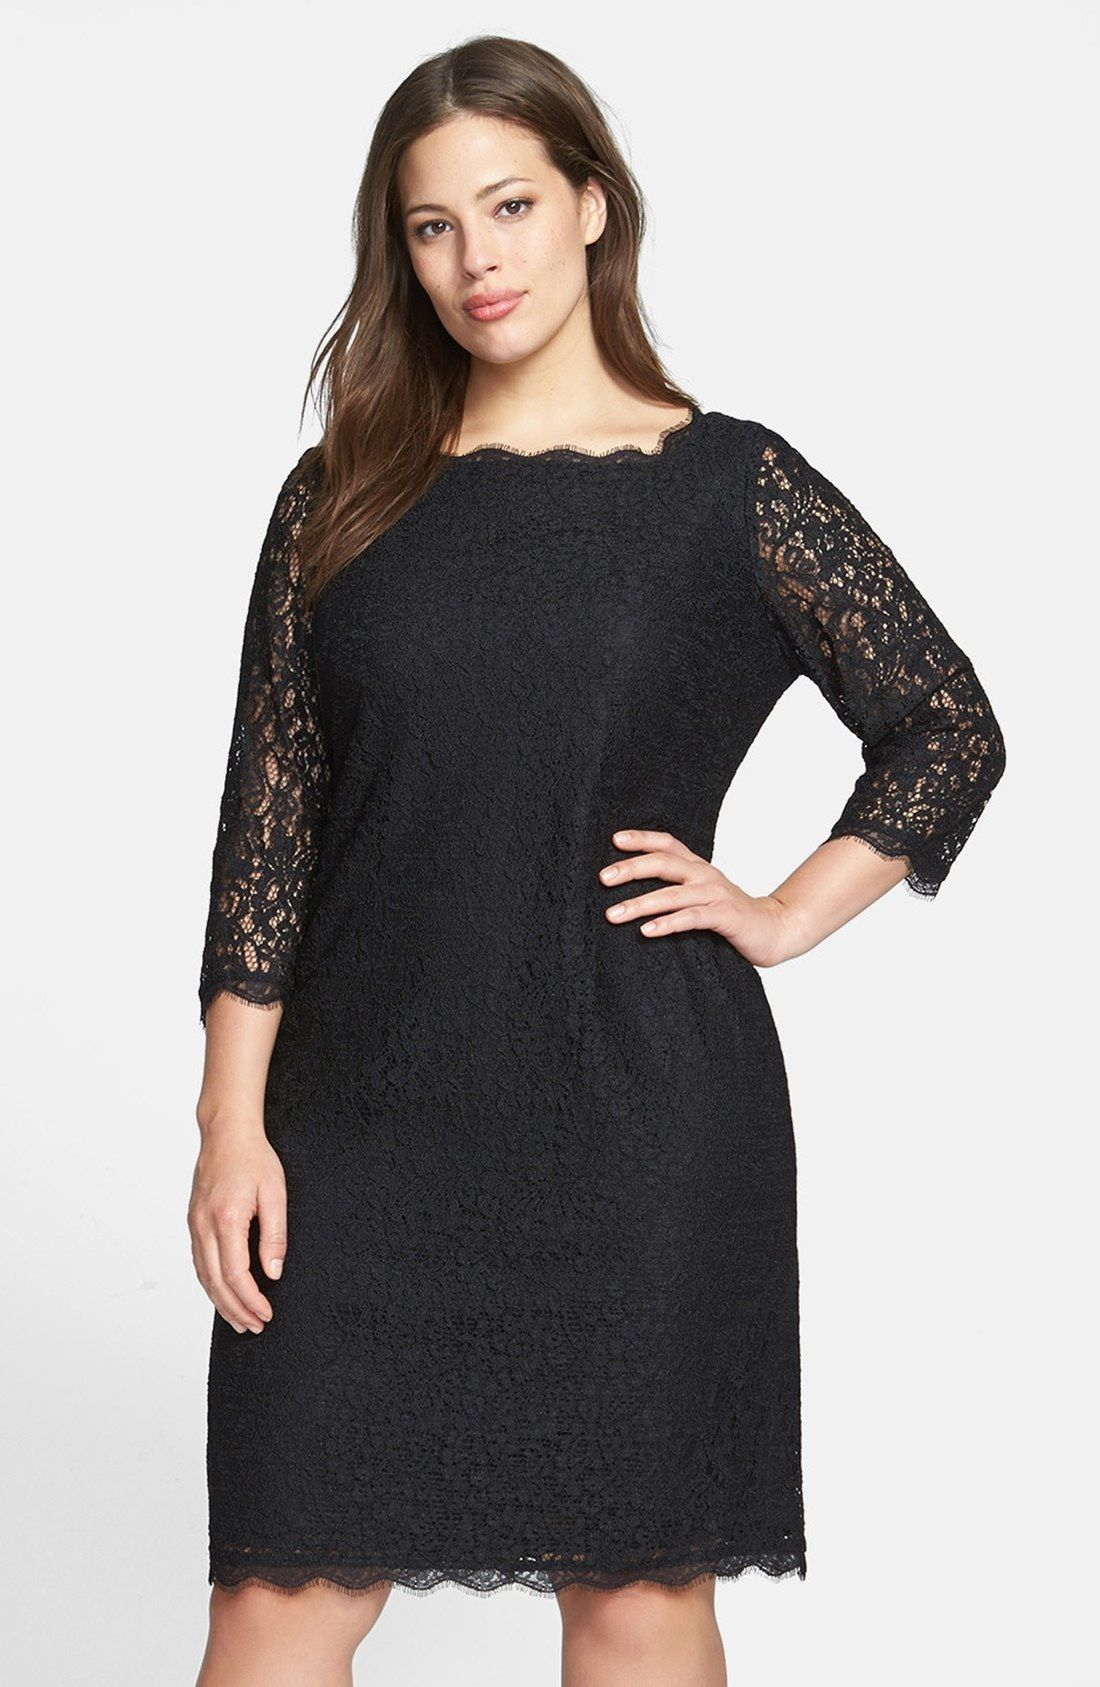 Plus Size Prom Dresses At Nordstrom